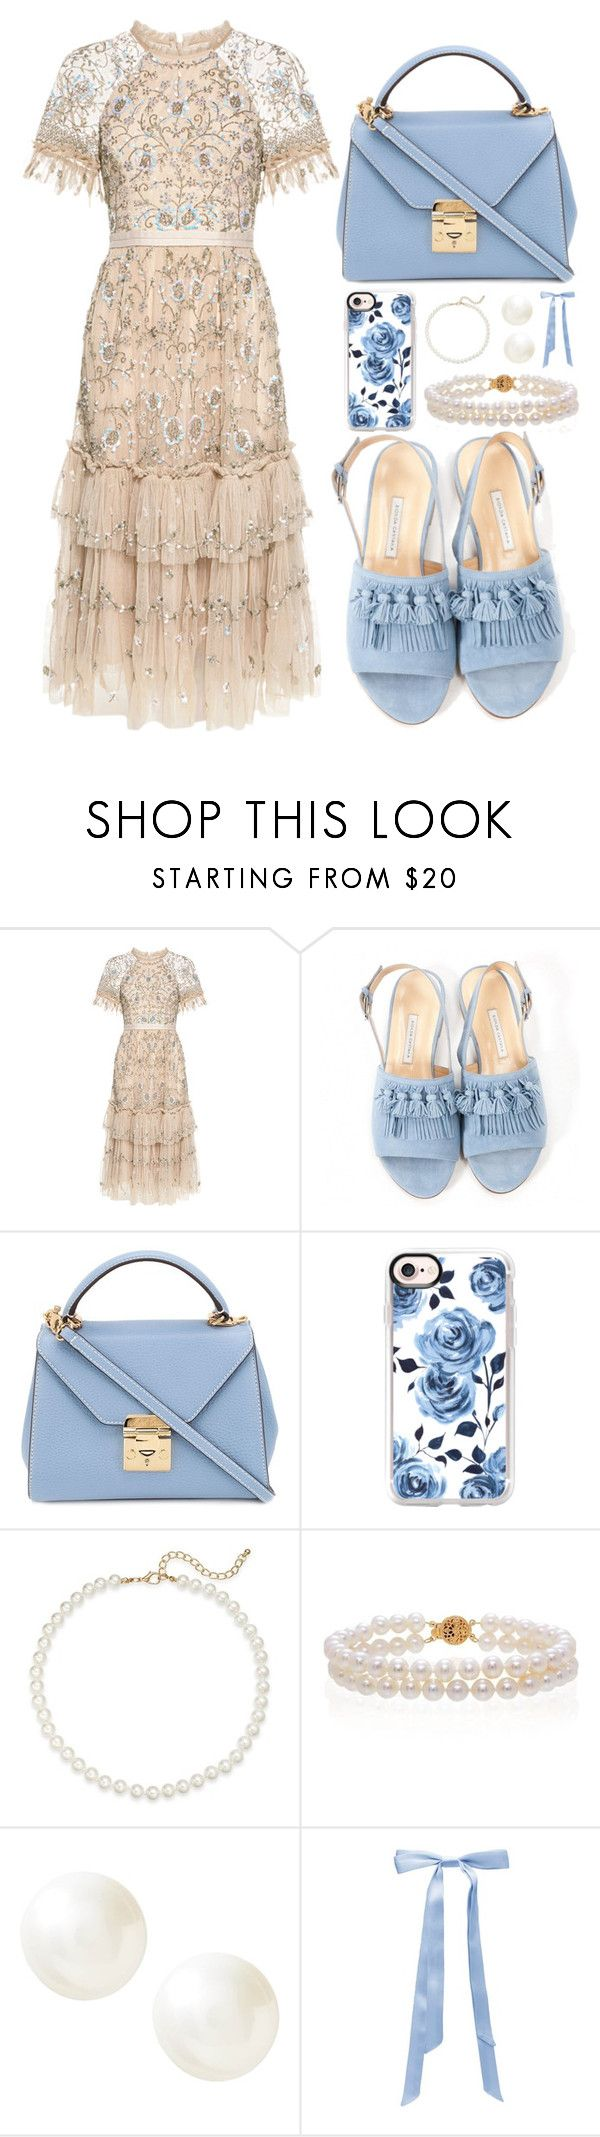 """Baby blue"" by belblackford ❤ liked on Polyvore featuring Needle & Thread, Bionda Castana, Mark Cross, Casetify, Saks Fifth Avenue, Belk & Co., Banana Republic and L. Erickson"